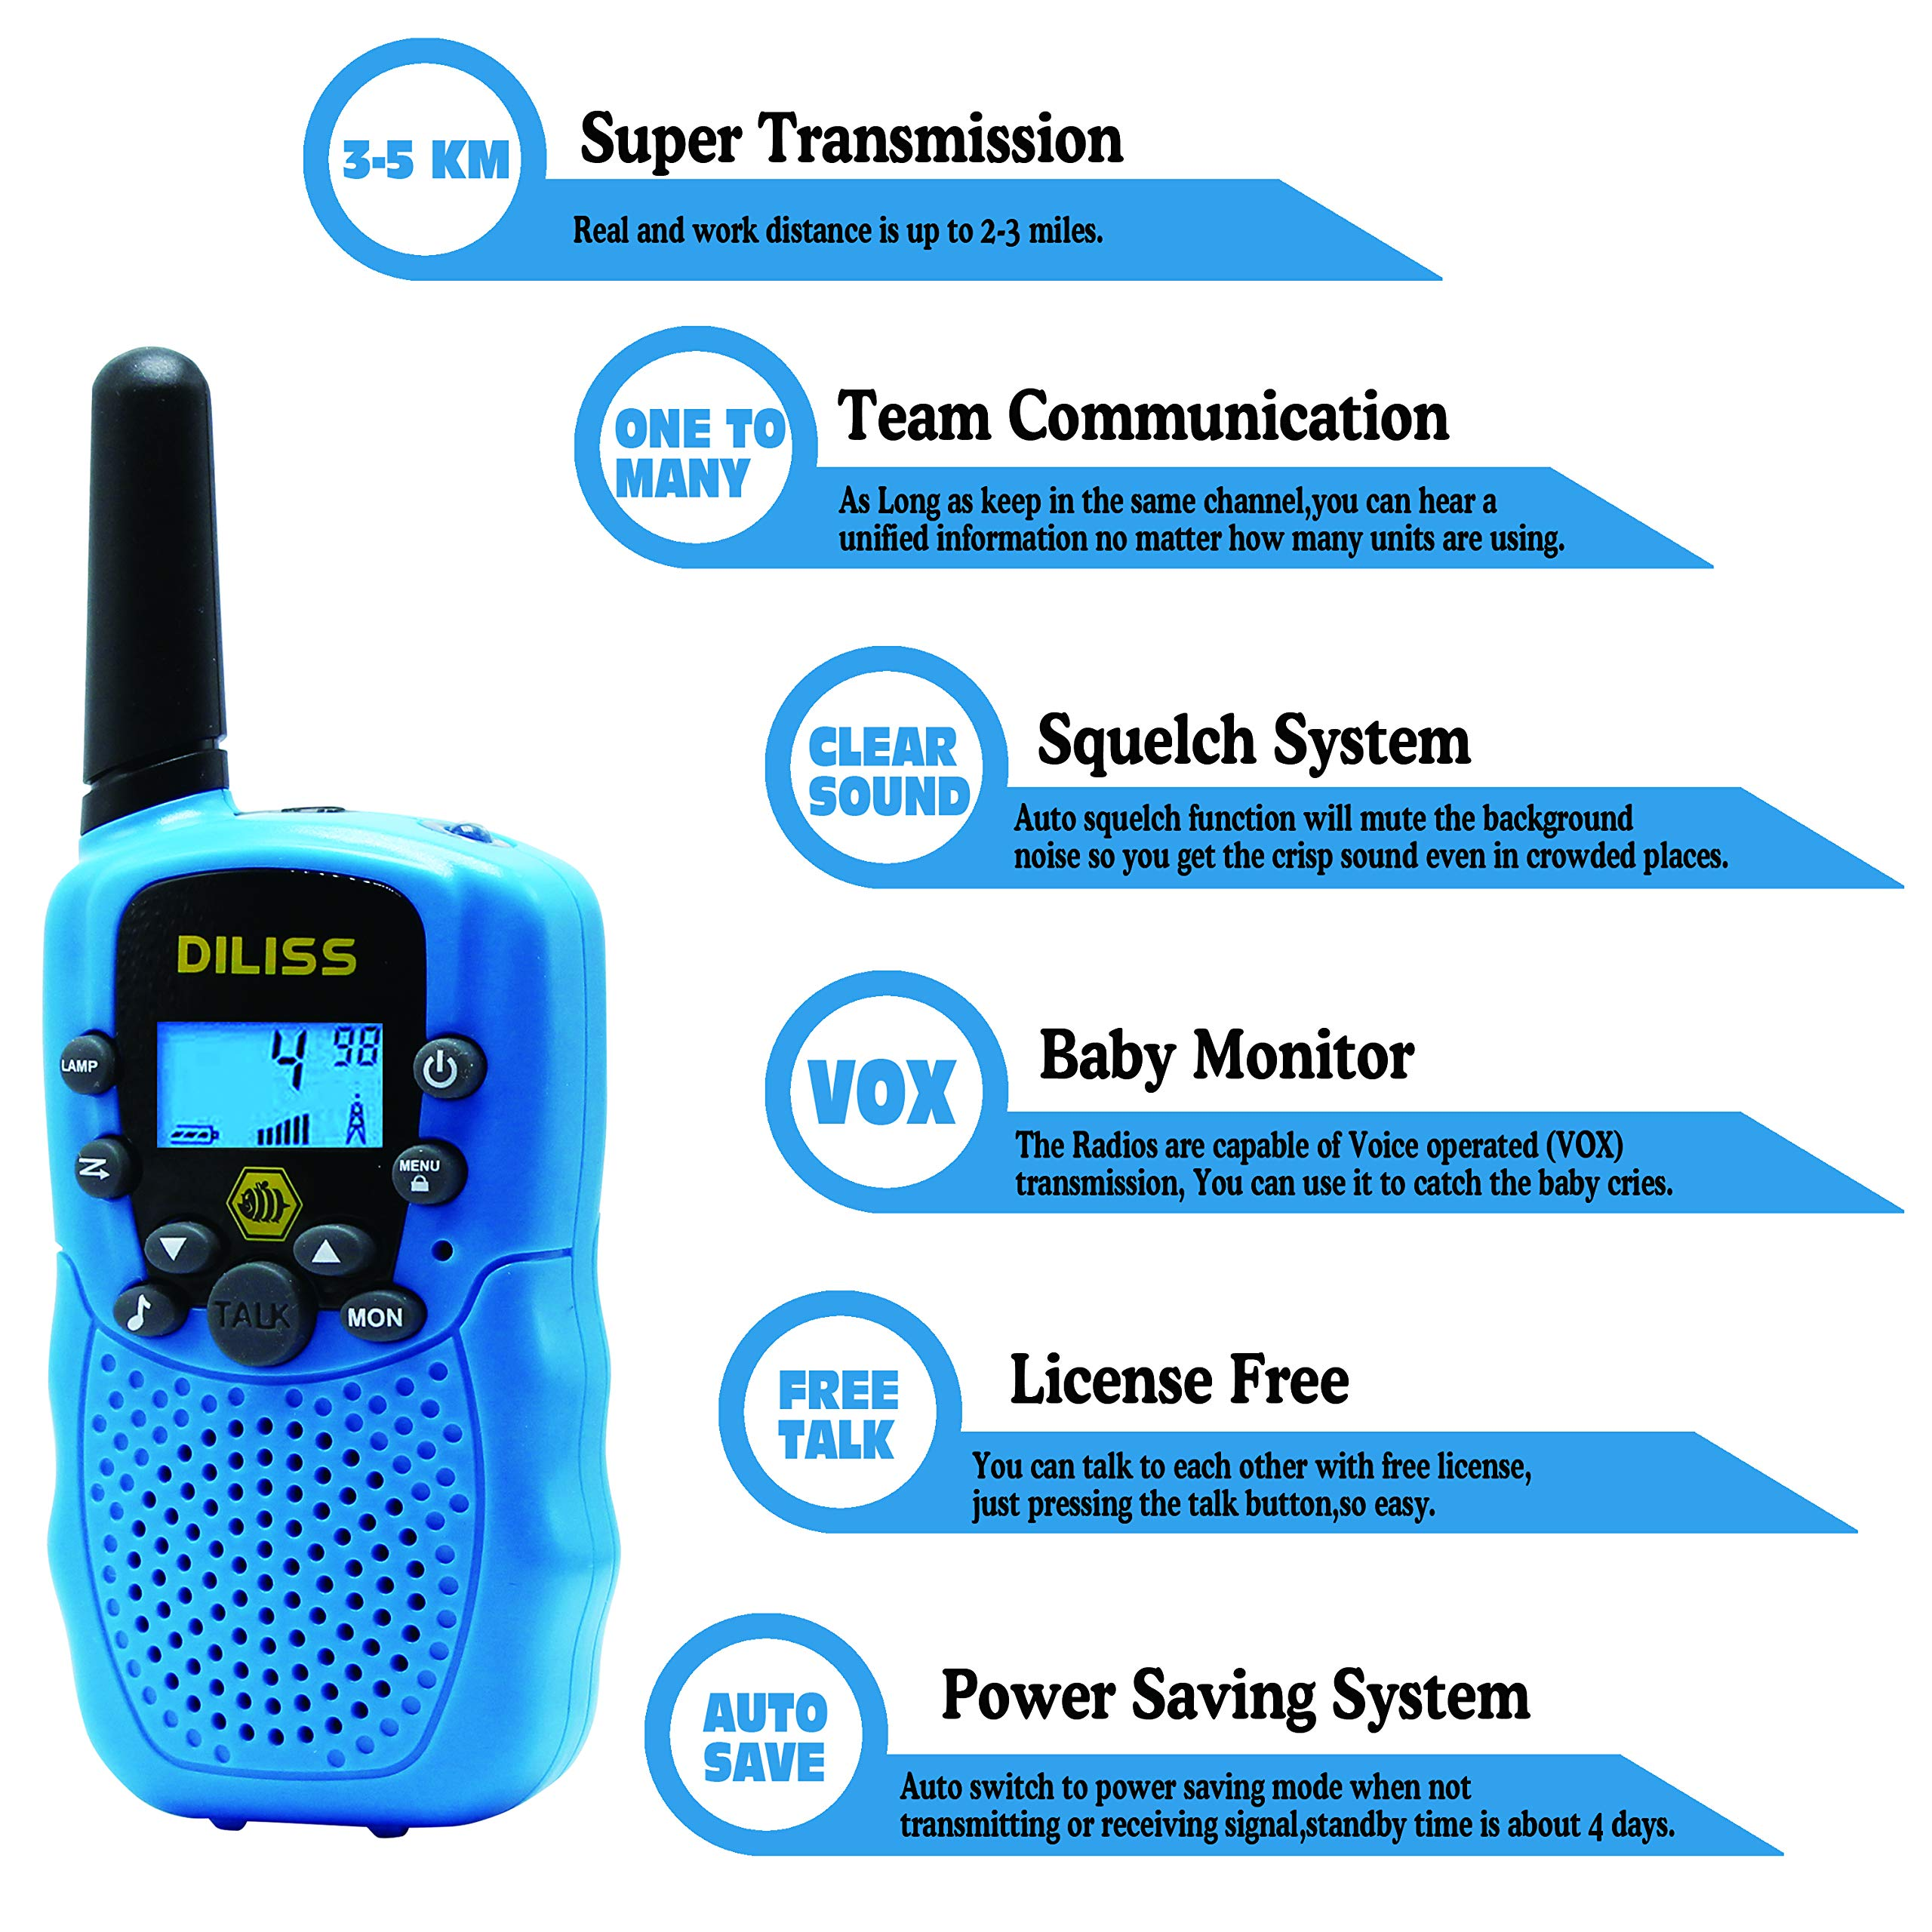 DilissToys Walkie Talkies for Kids by DilissToys (Image #7)